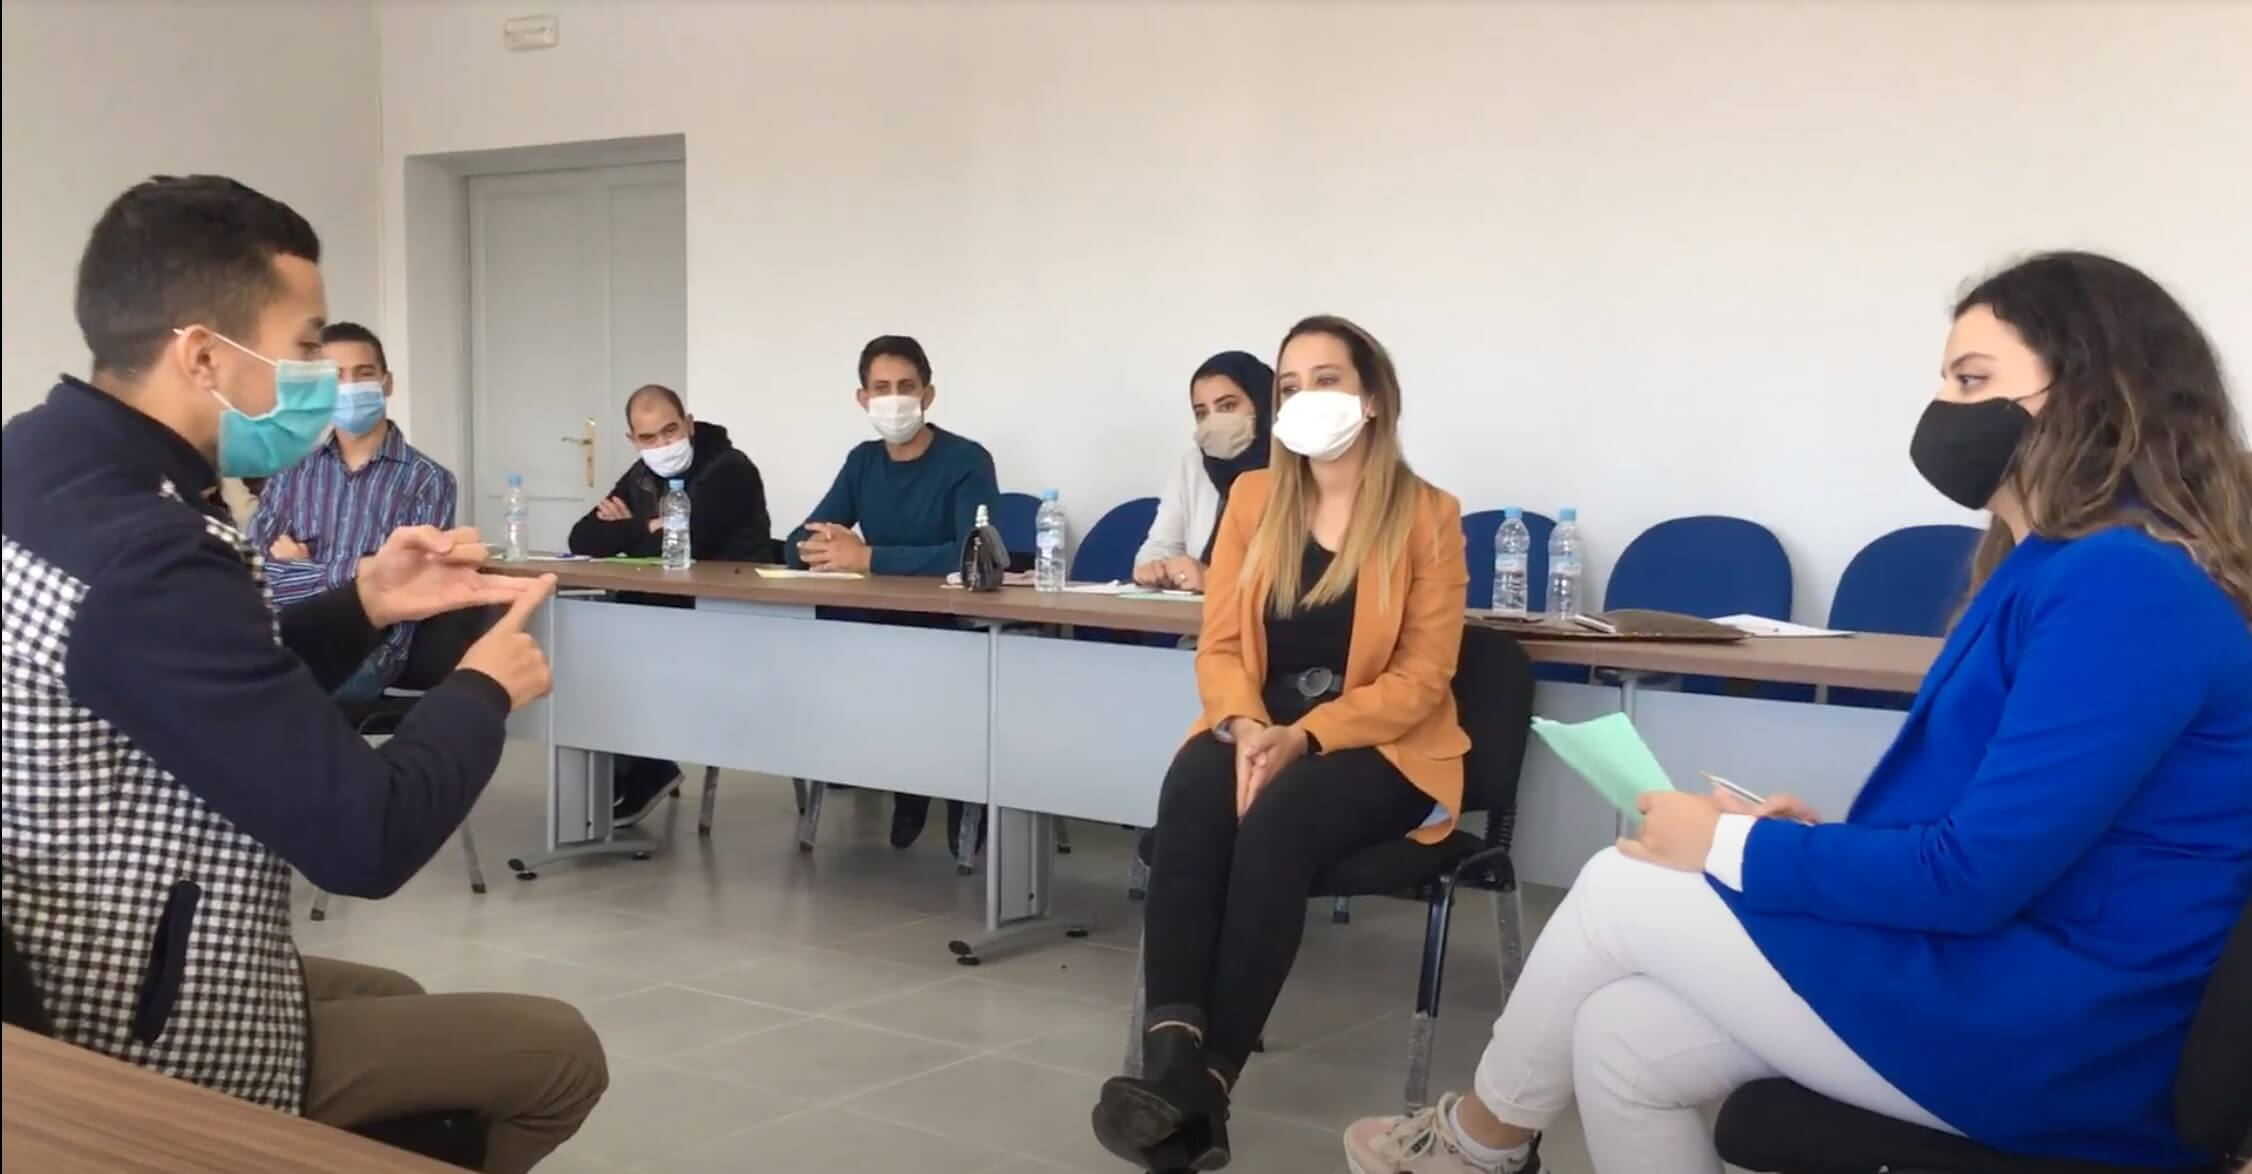 Legal Aid Helps Migrants Integrate, Reduces Causes of Smuggling